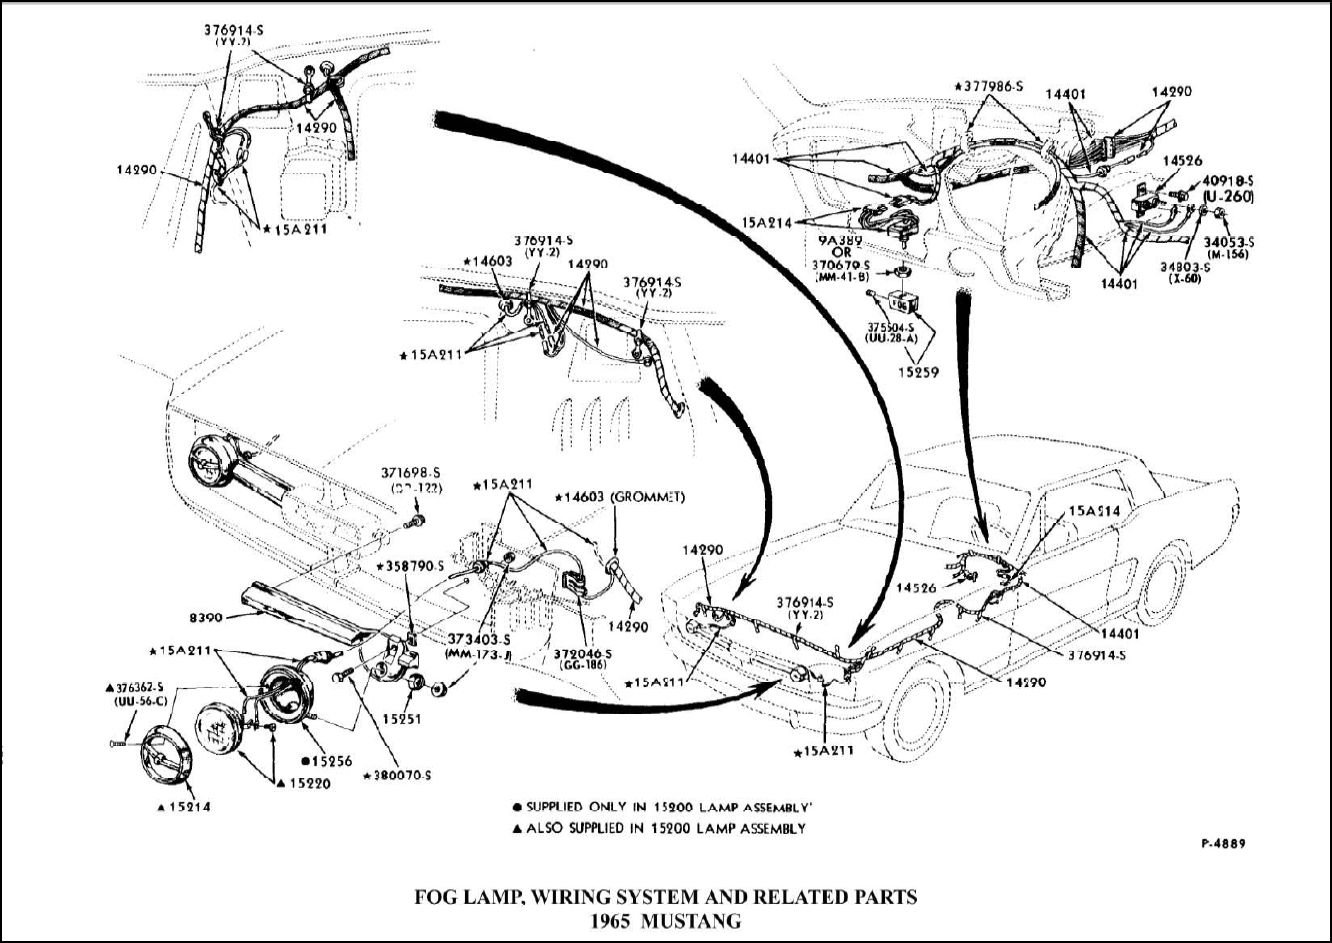 1965 Mustang Wiring Diagram 27 Images Galaxie Gt Fog Light Ford Forum 118198d1293507181